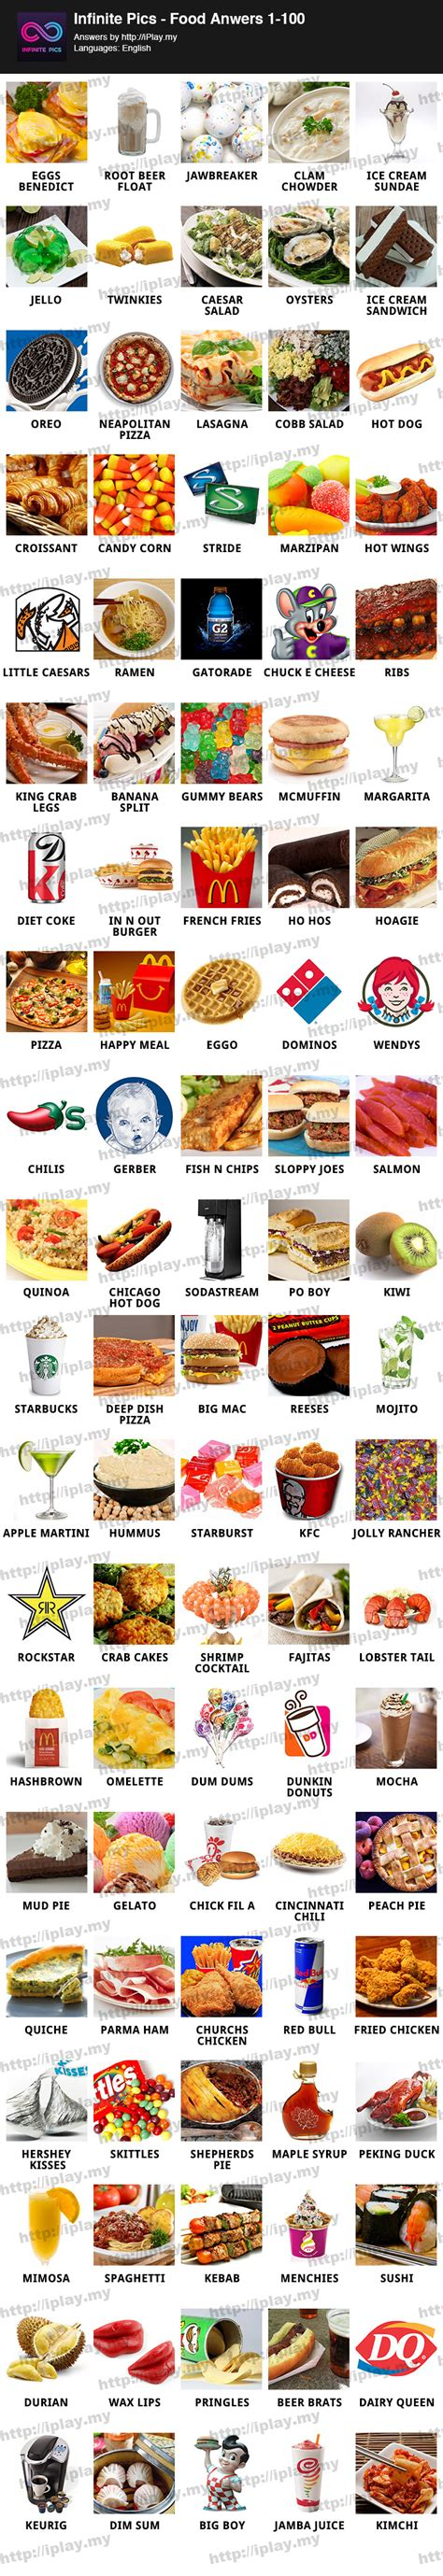 100 pics solution cuisine answers to 100 pics food logos 12 000 vector logos